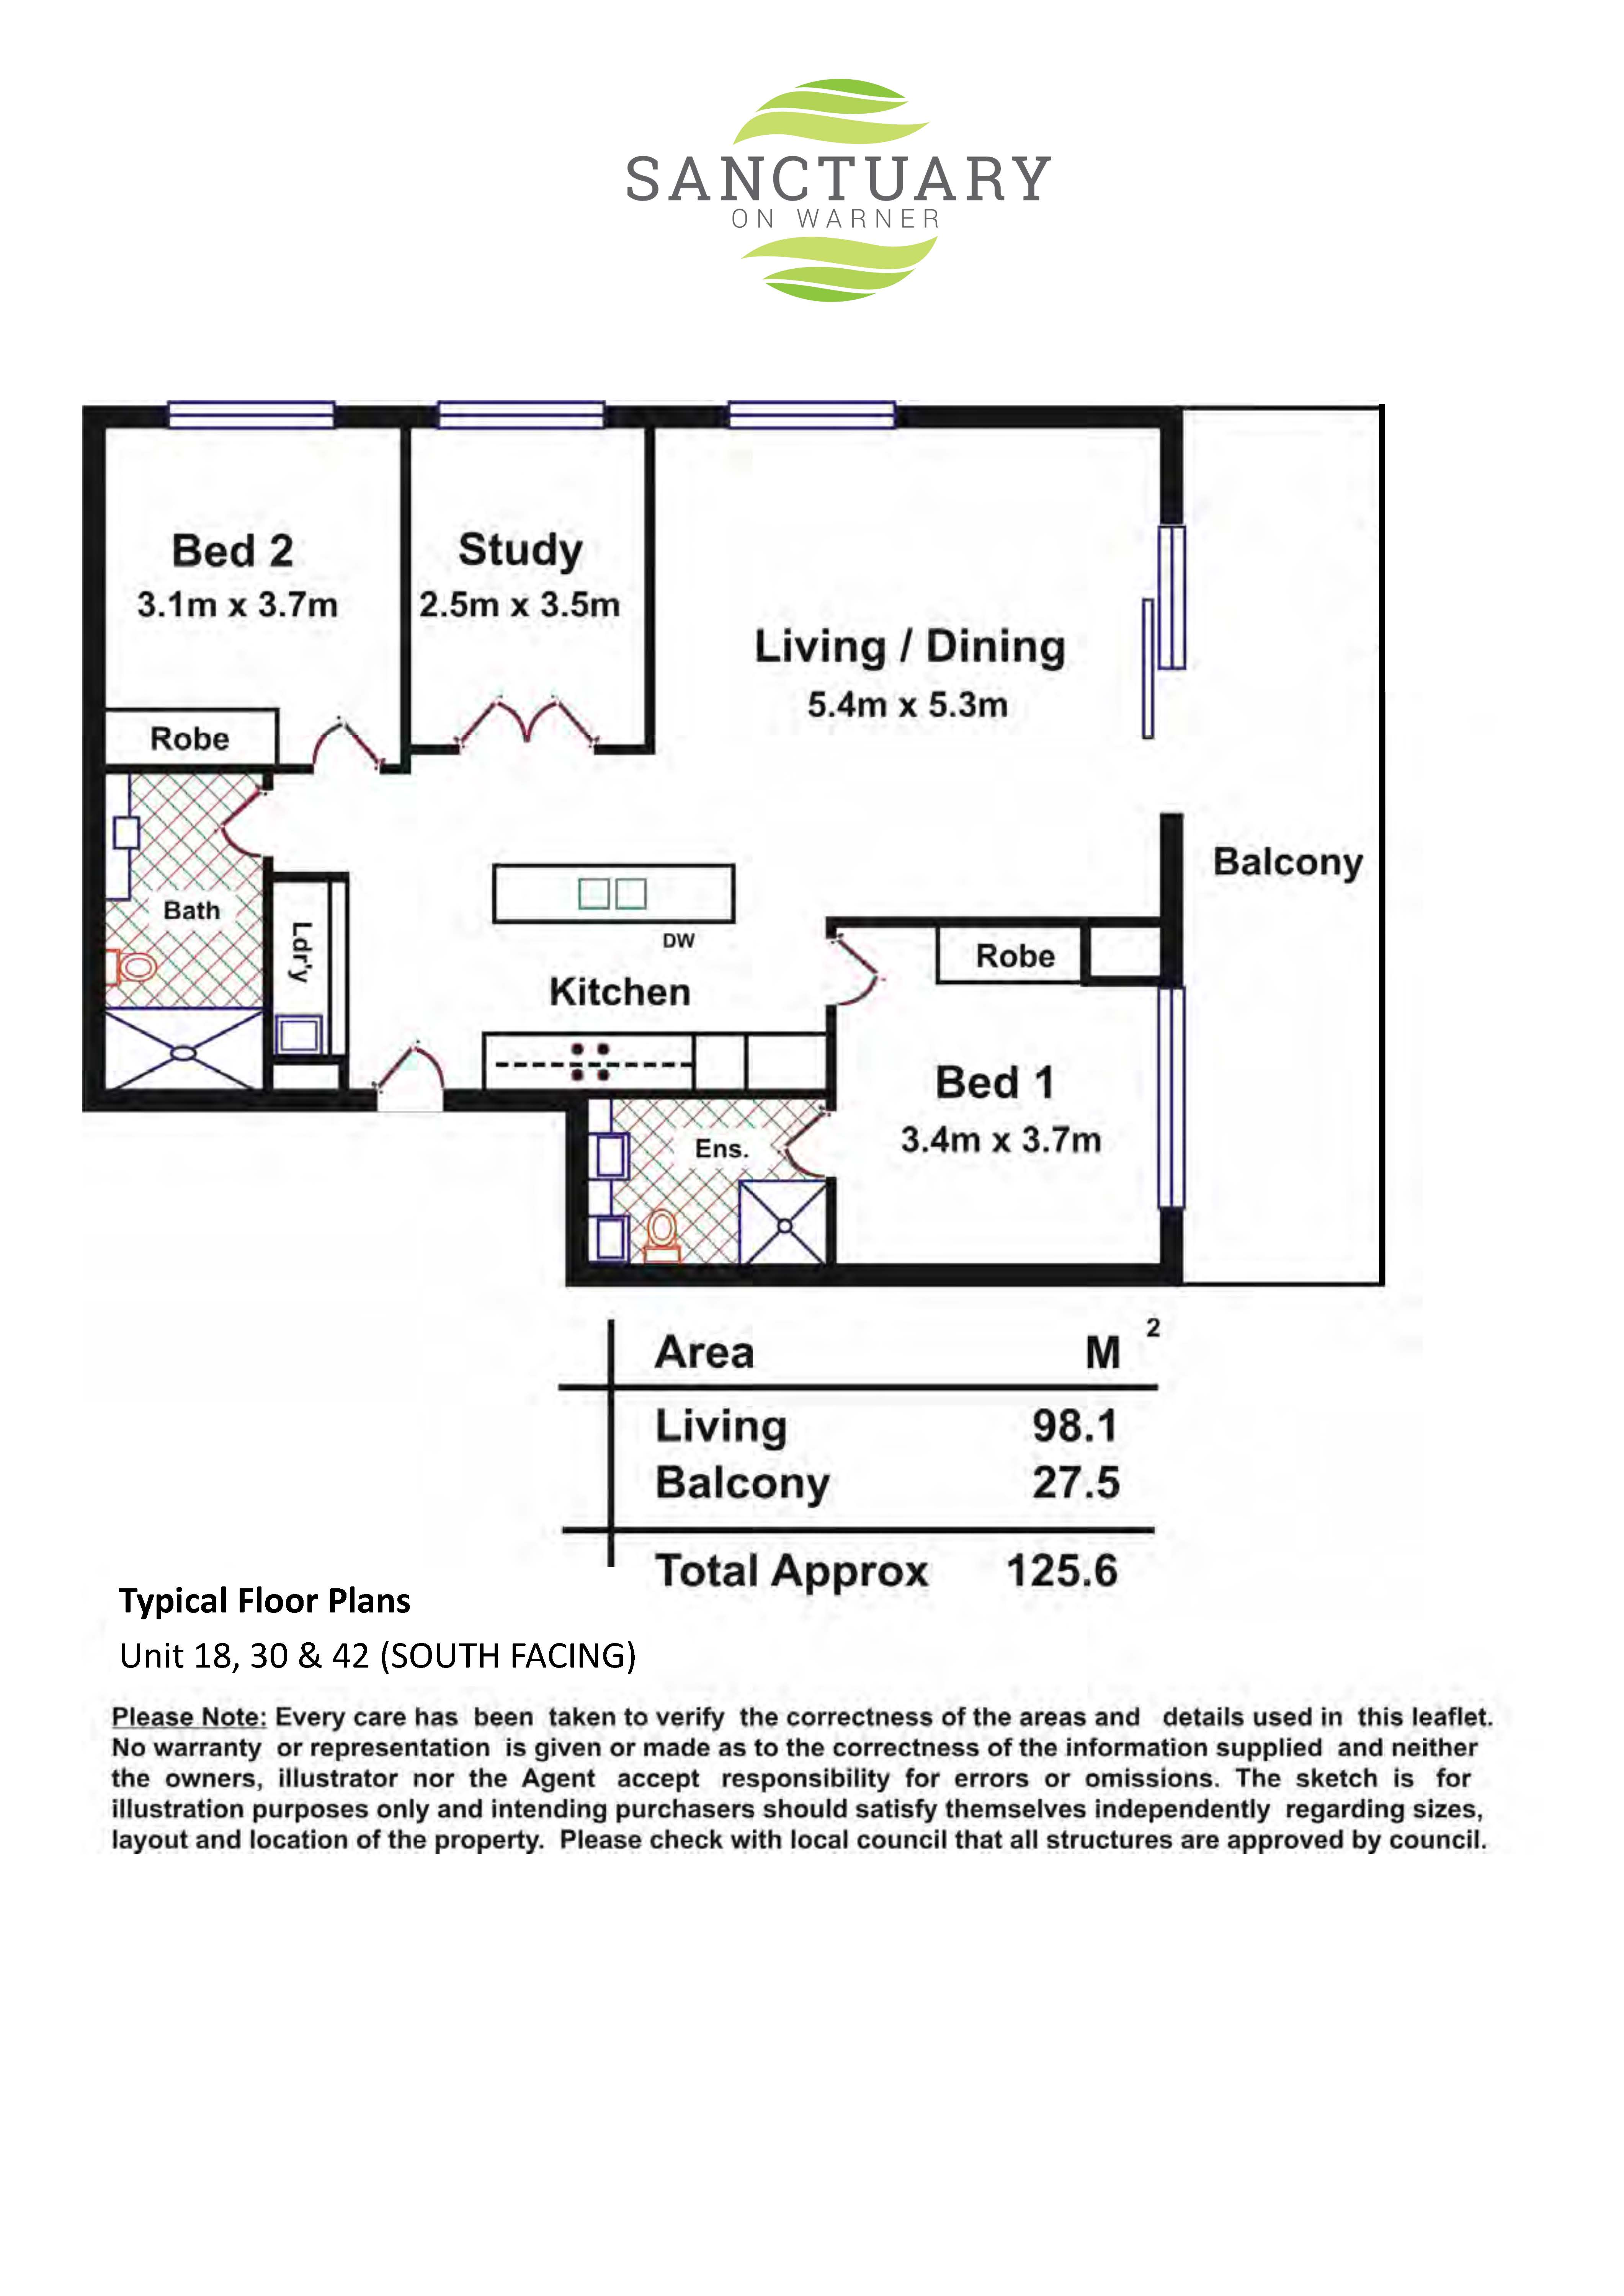 mydimport-1596538640-hires.22614-SanctuaryApartmentFloorPlans2017Page14.jpg